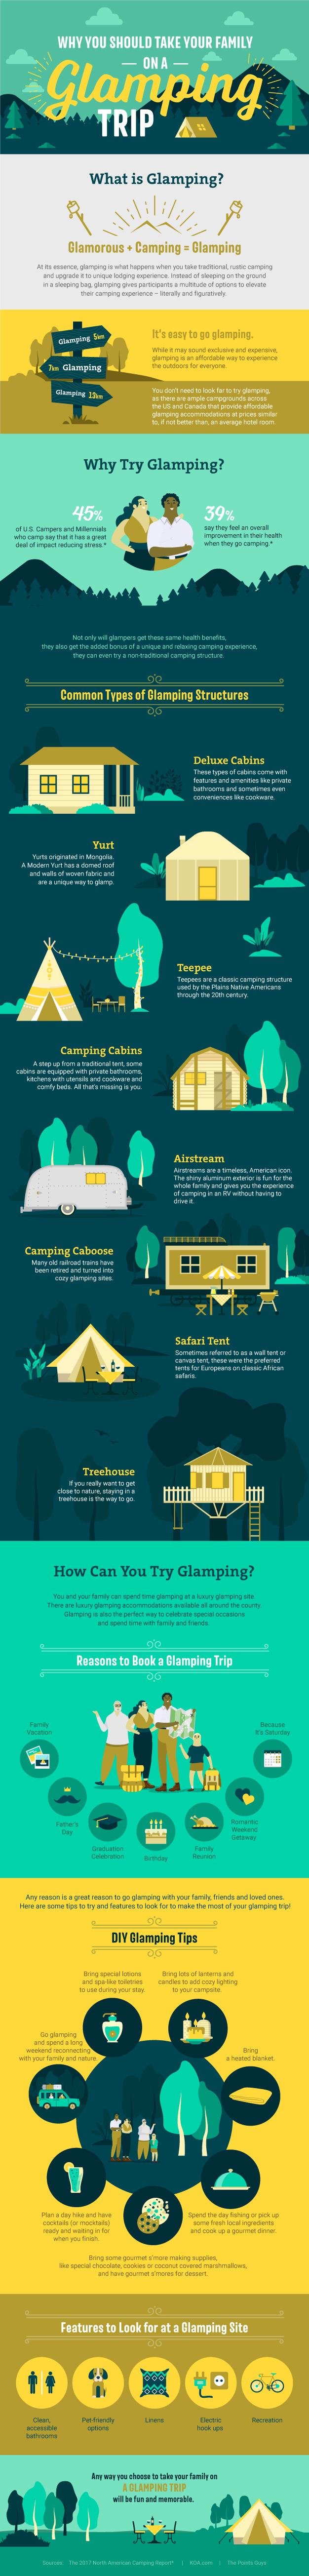 How Families Can Stay Fit While Glamping